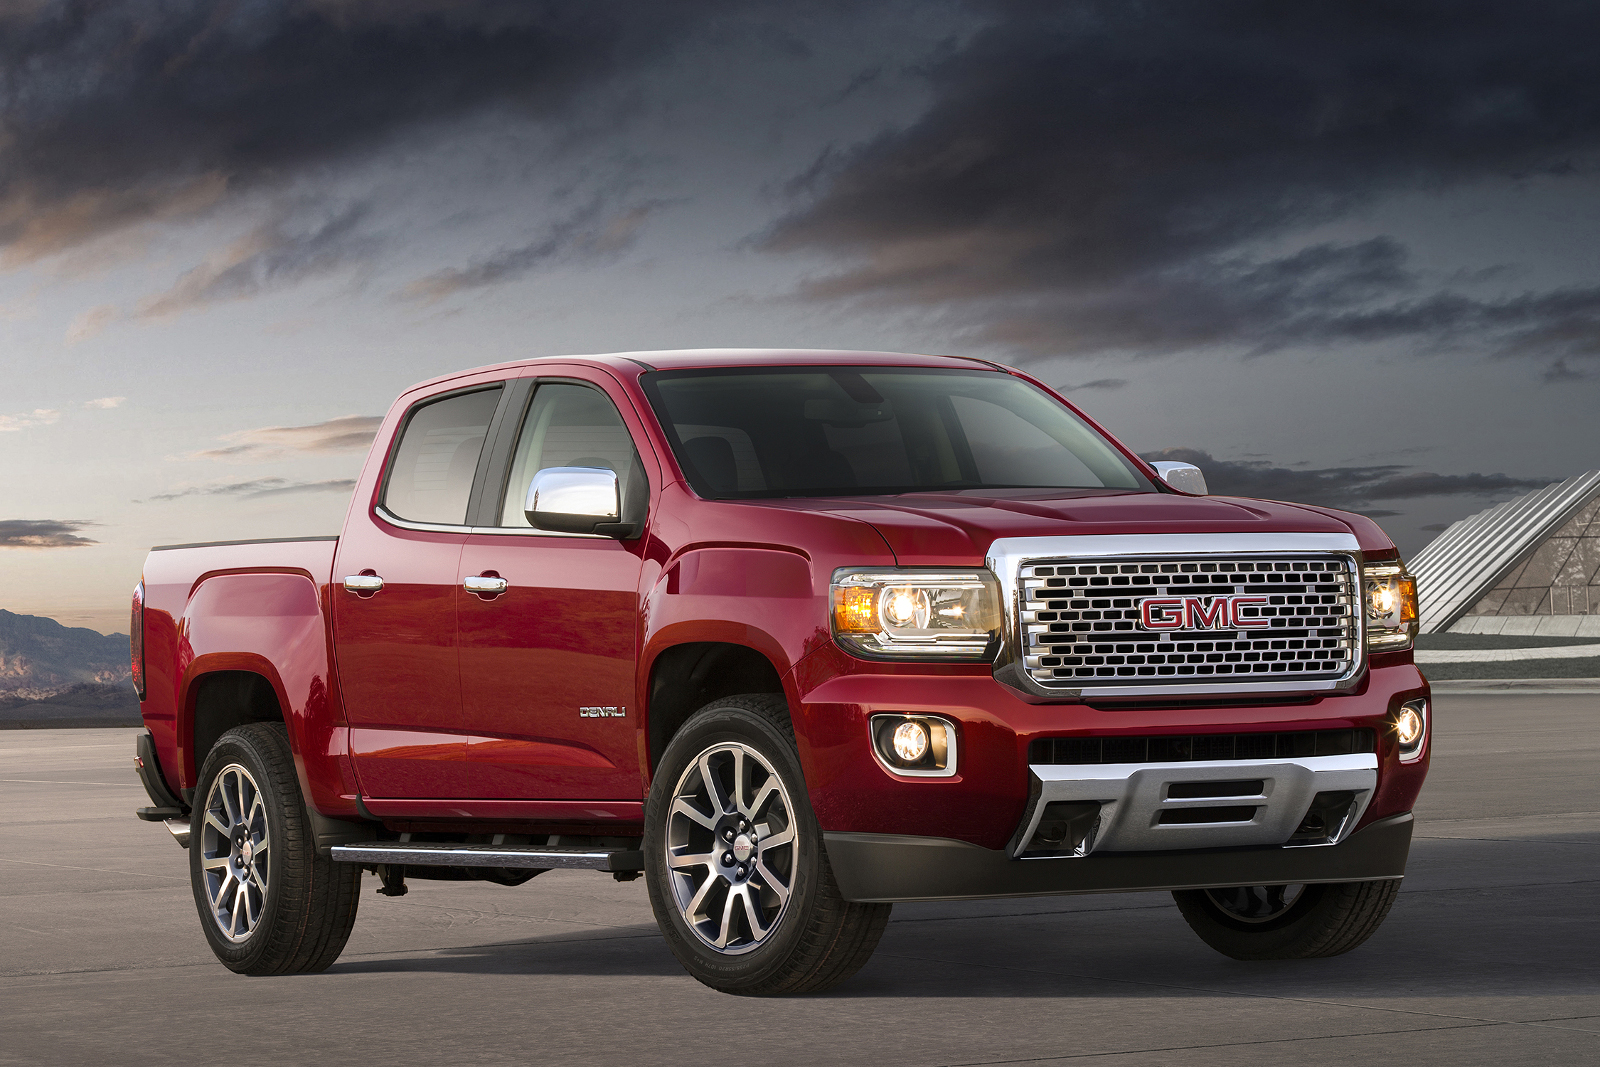 2017 Gmc Canyon Gets Denali Treatment In La Invents